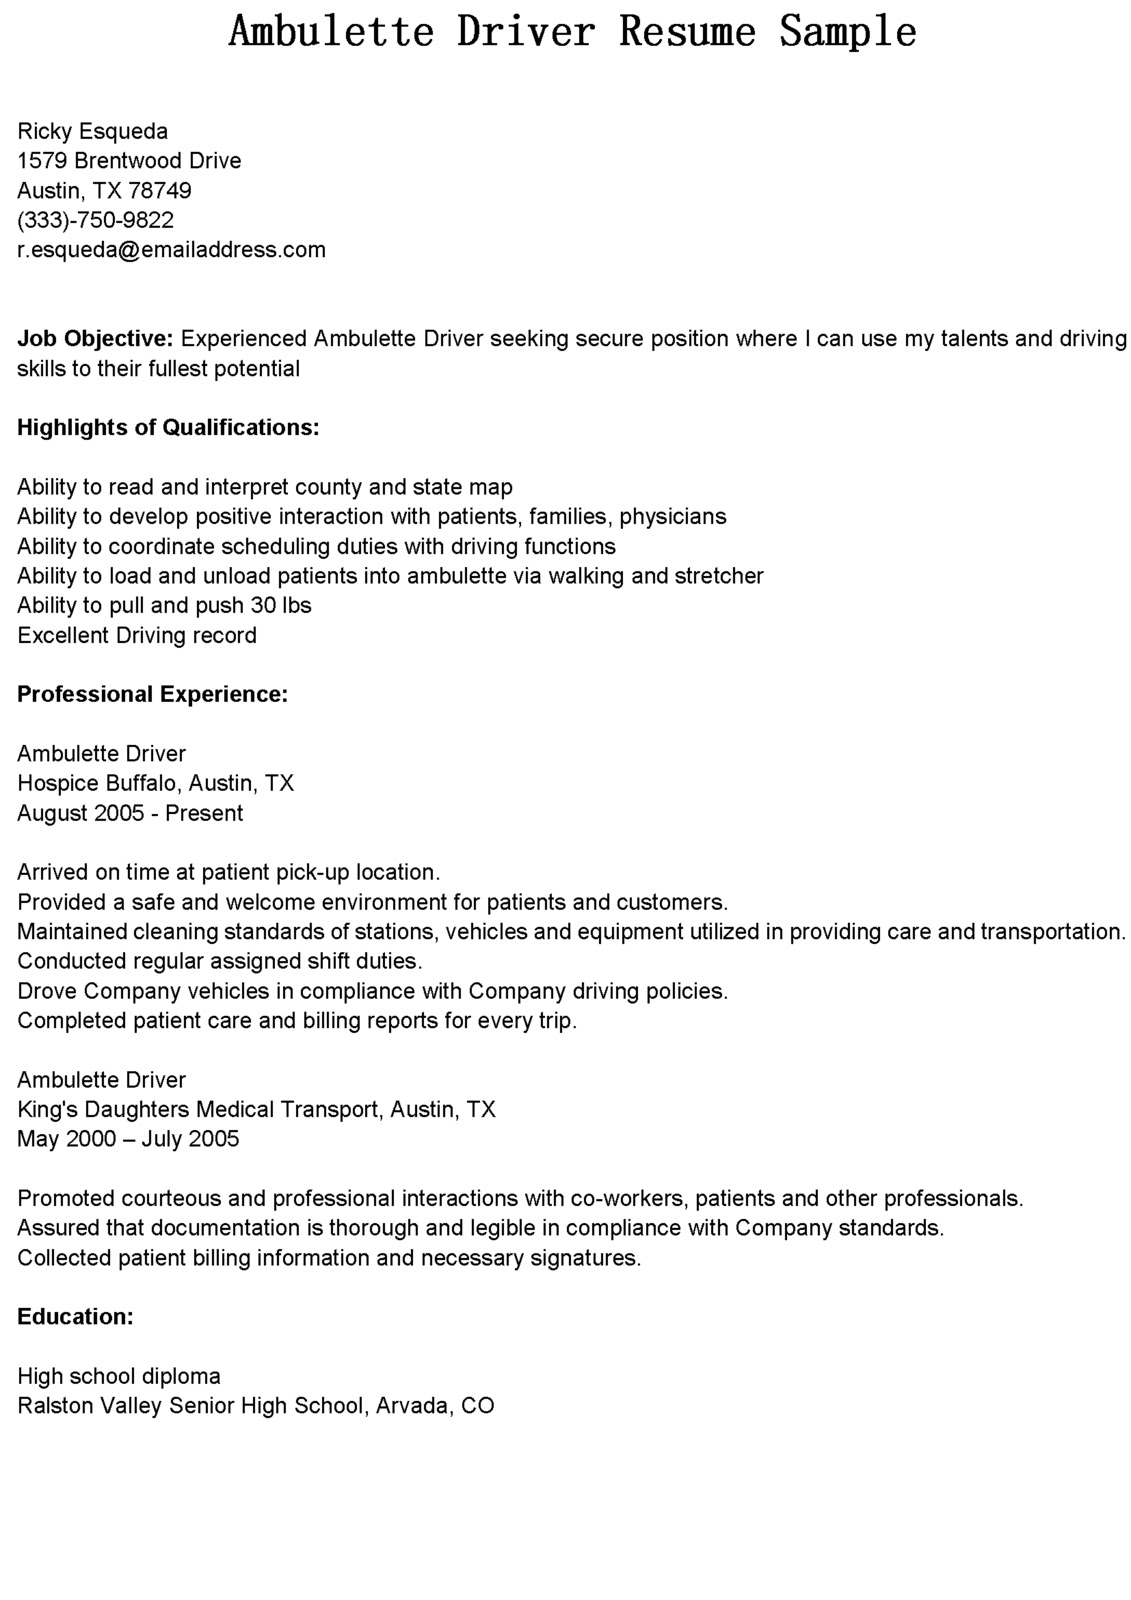 functional resume examples for heavy equipment operator functional resume examples for heavy equipment operator analytical instrument repair calibration resume resume tips and resume